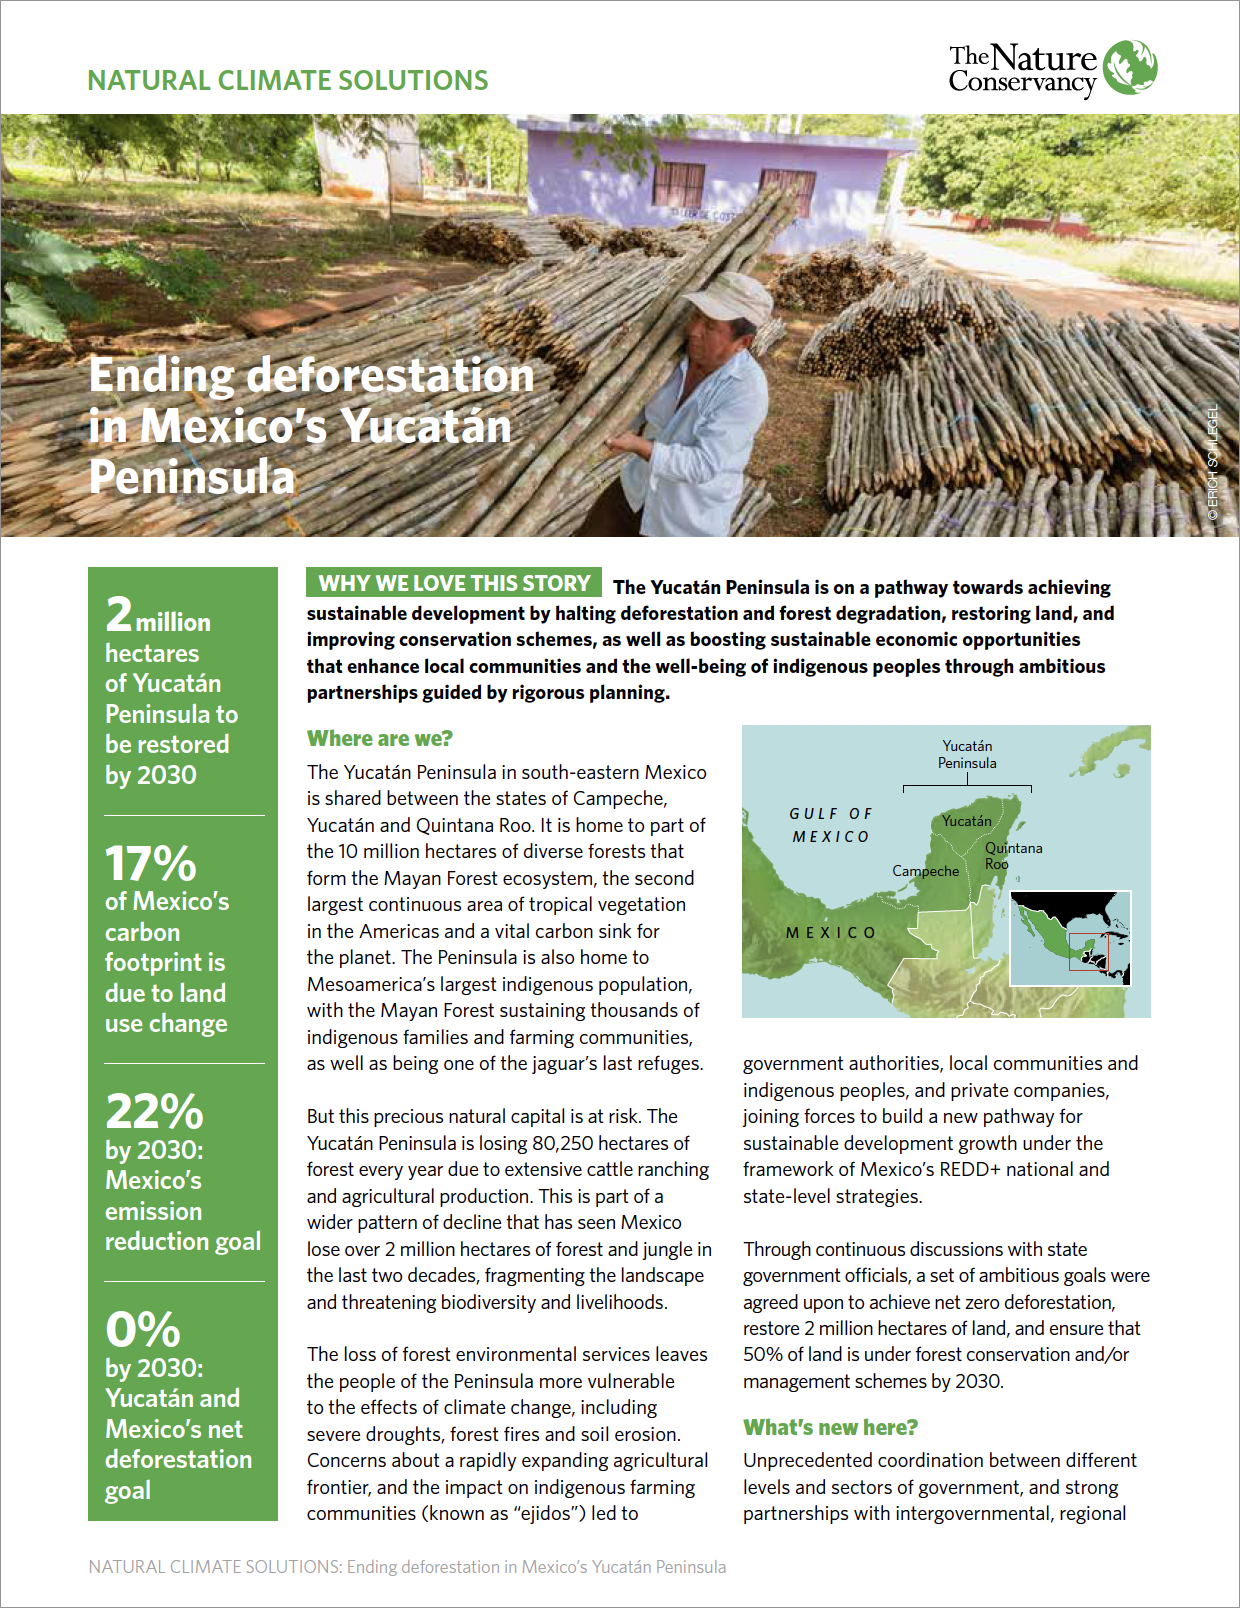 Natural Climate Solutions - Ending deforestation in Mexico's Yucatan Peninsula Case Study